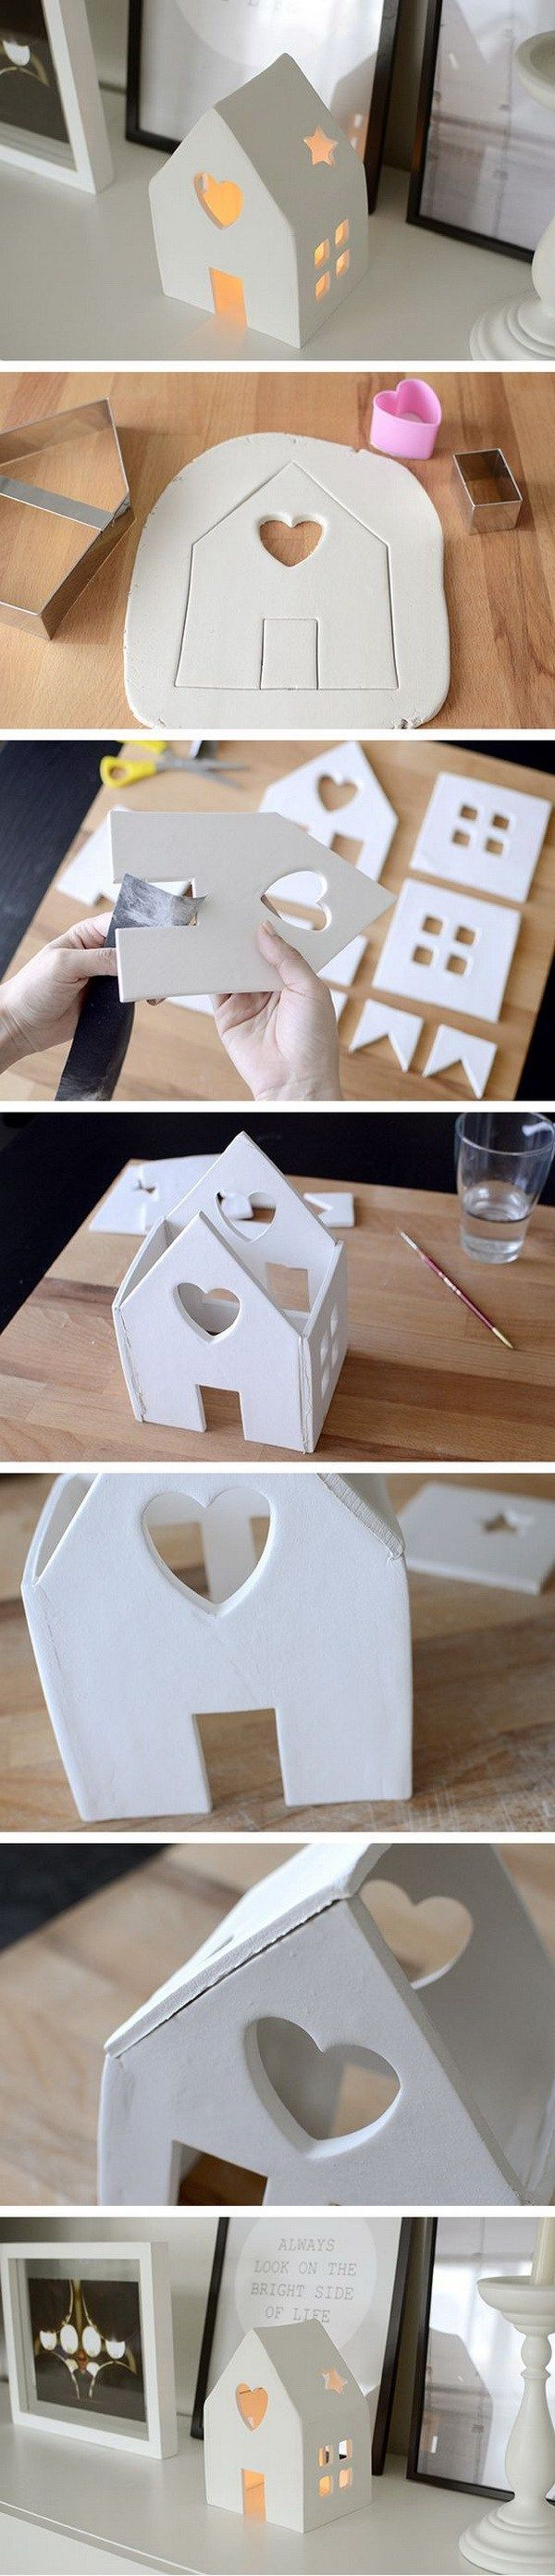 DIY House Candle Holder With Air Dry Clay. Make this cute house candle holder with air dry clay! Perfect decor for your holiday party. Bringing a beautiful glow to any environment.